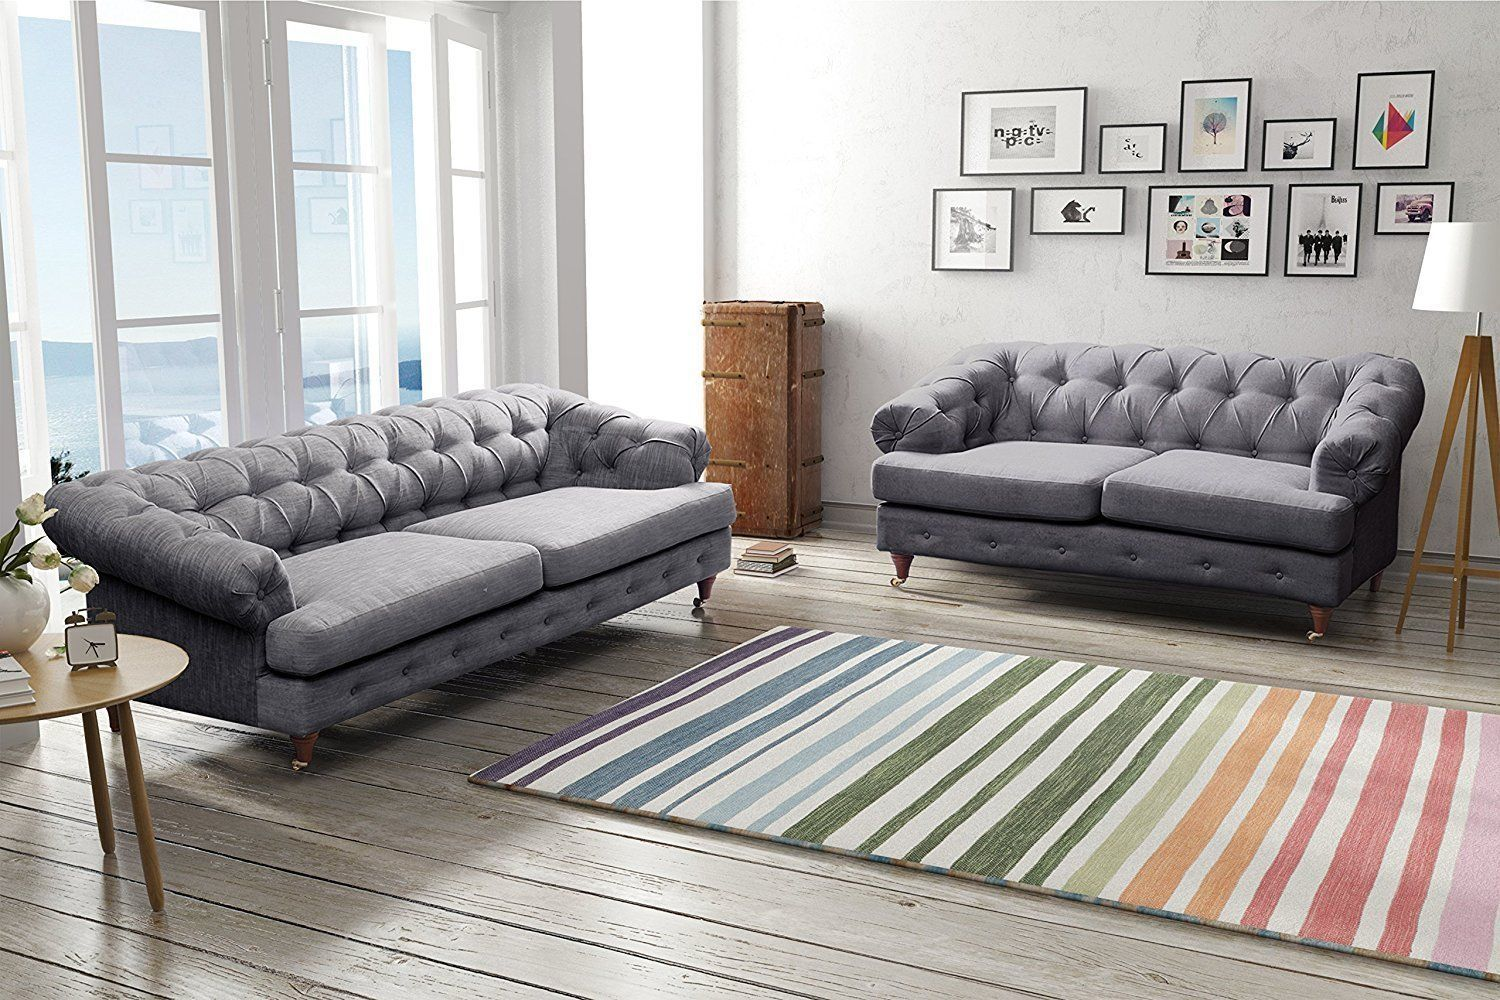 Online Sofa Wholesale Is Based In Birmingham And Have Been Serving The Furniture  Industry For The